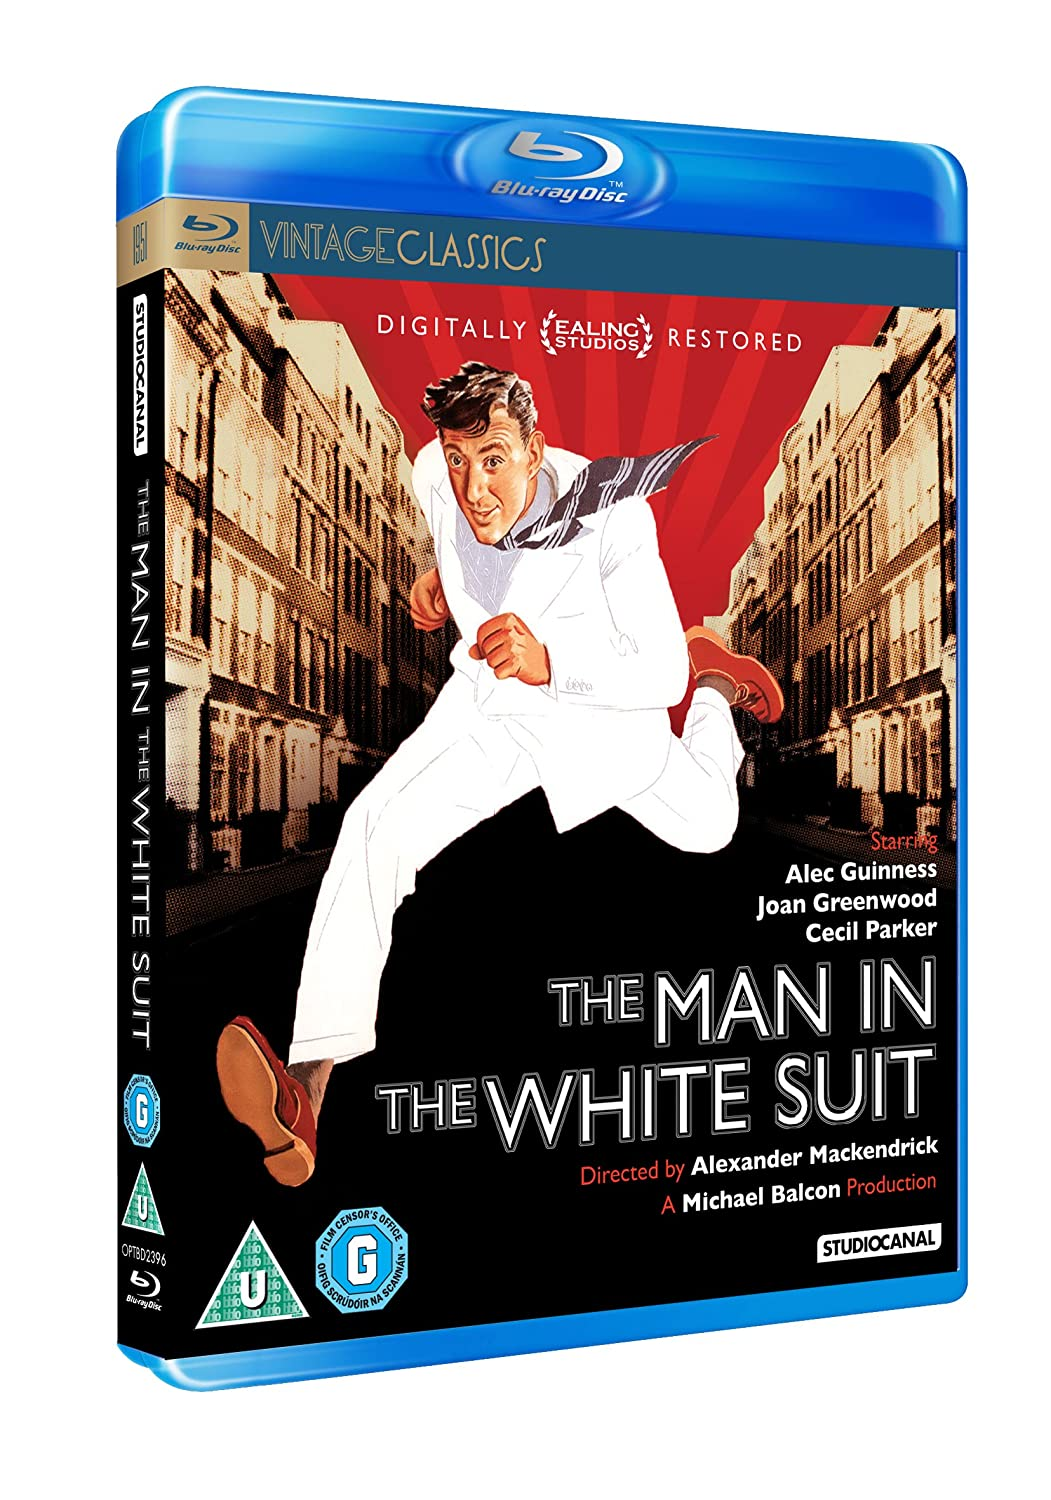 Amazon.com: The Man in the White Suit (El hombre del traje blanco)  [ NON-USA FORMAT, Blu-Ray, Reg.B Import - United Kingdom ]: Alec Guinness, Cecil Parker ...